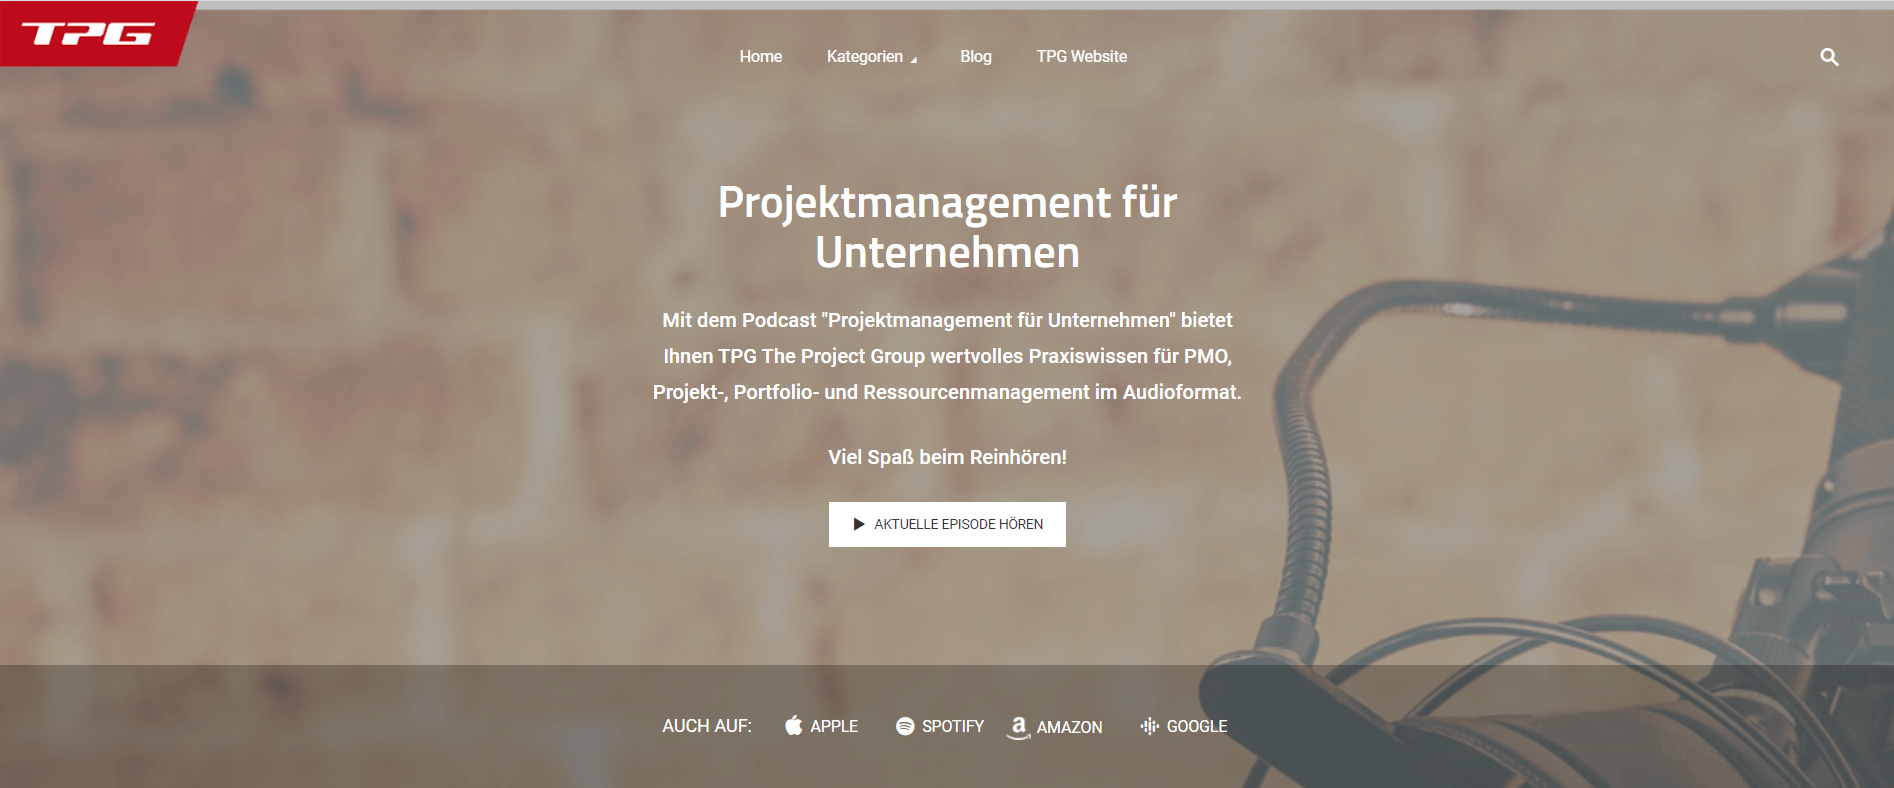 TPG The Project Group Projektmanagement-Podcasts